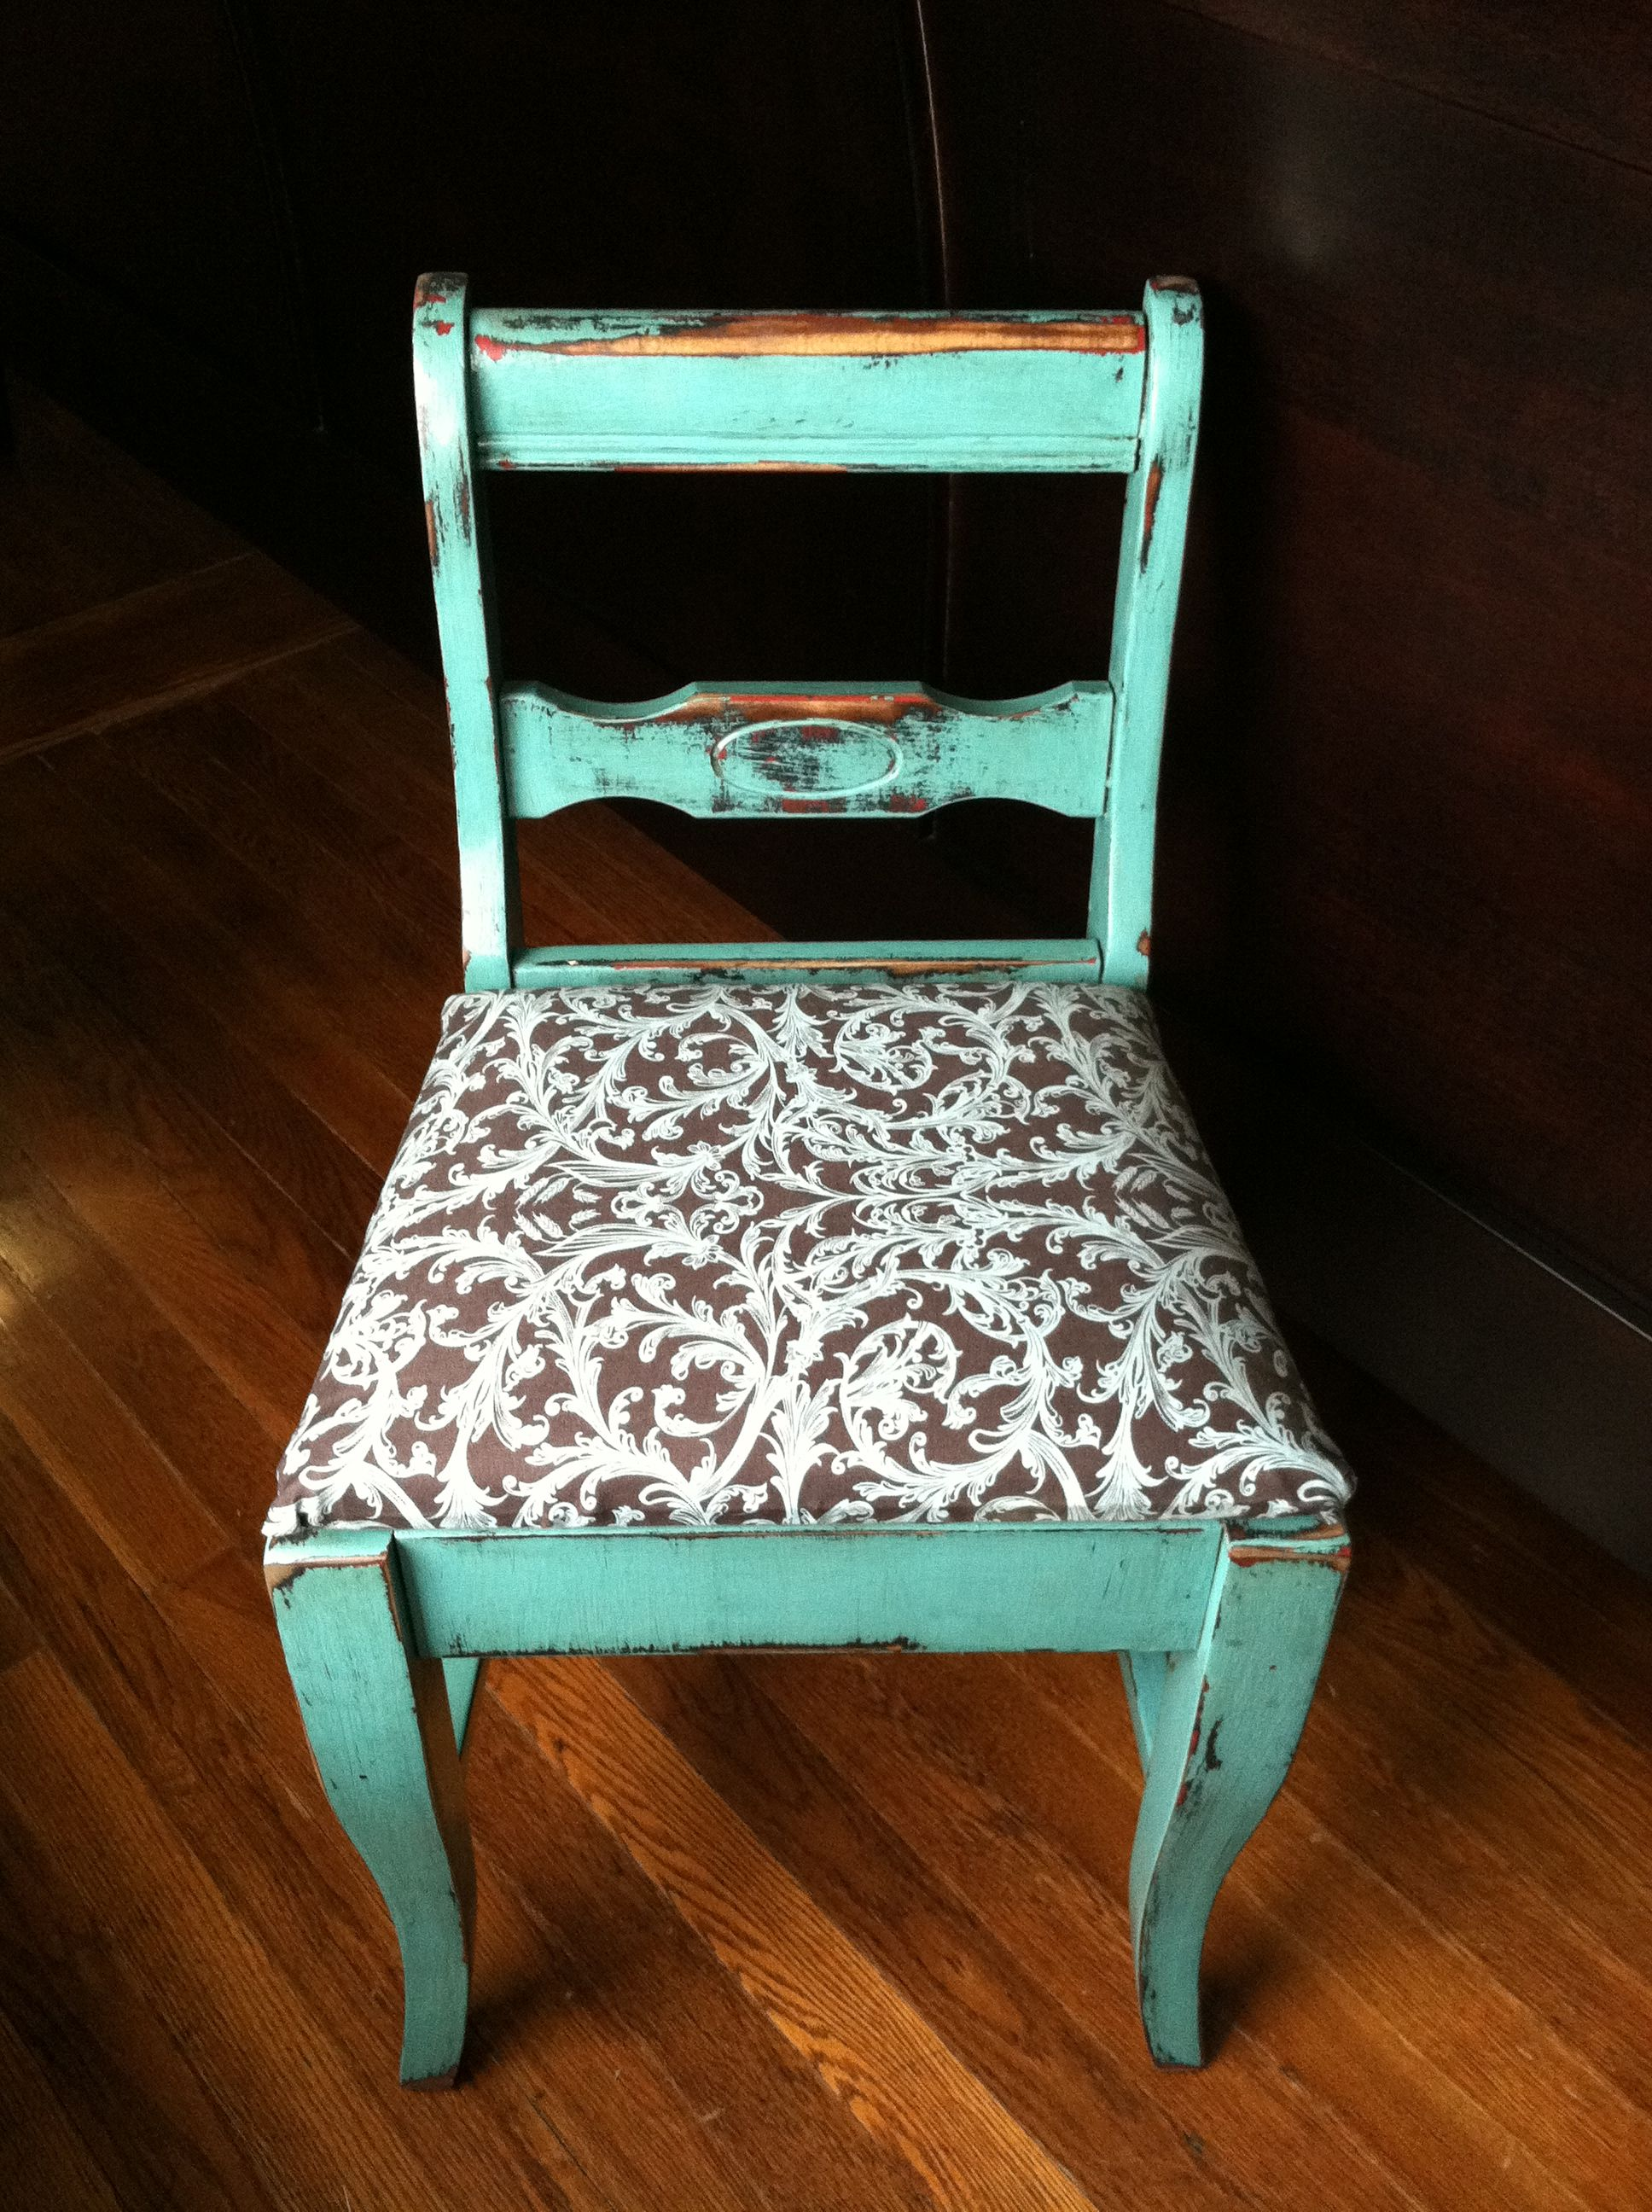 Another Goodwill find This one is a sewing chair The seat raises